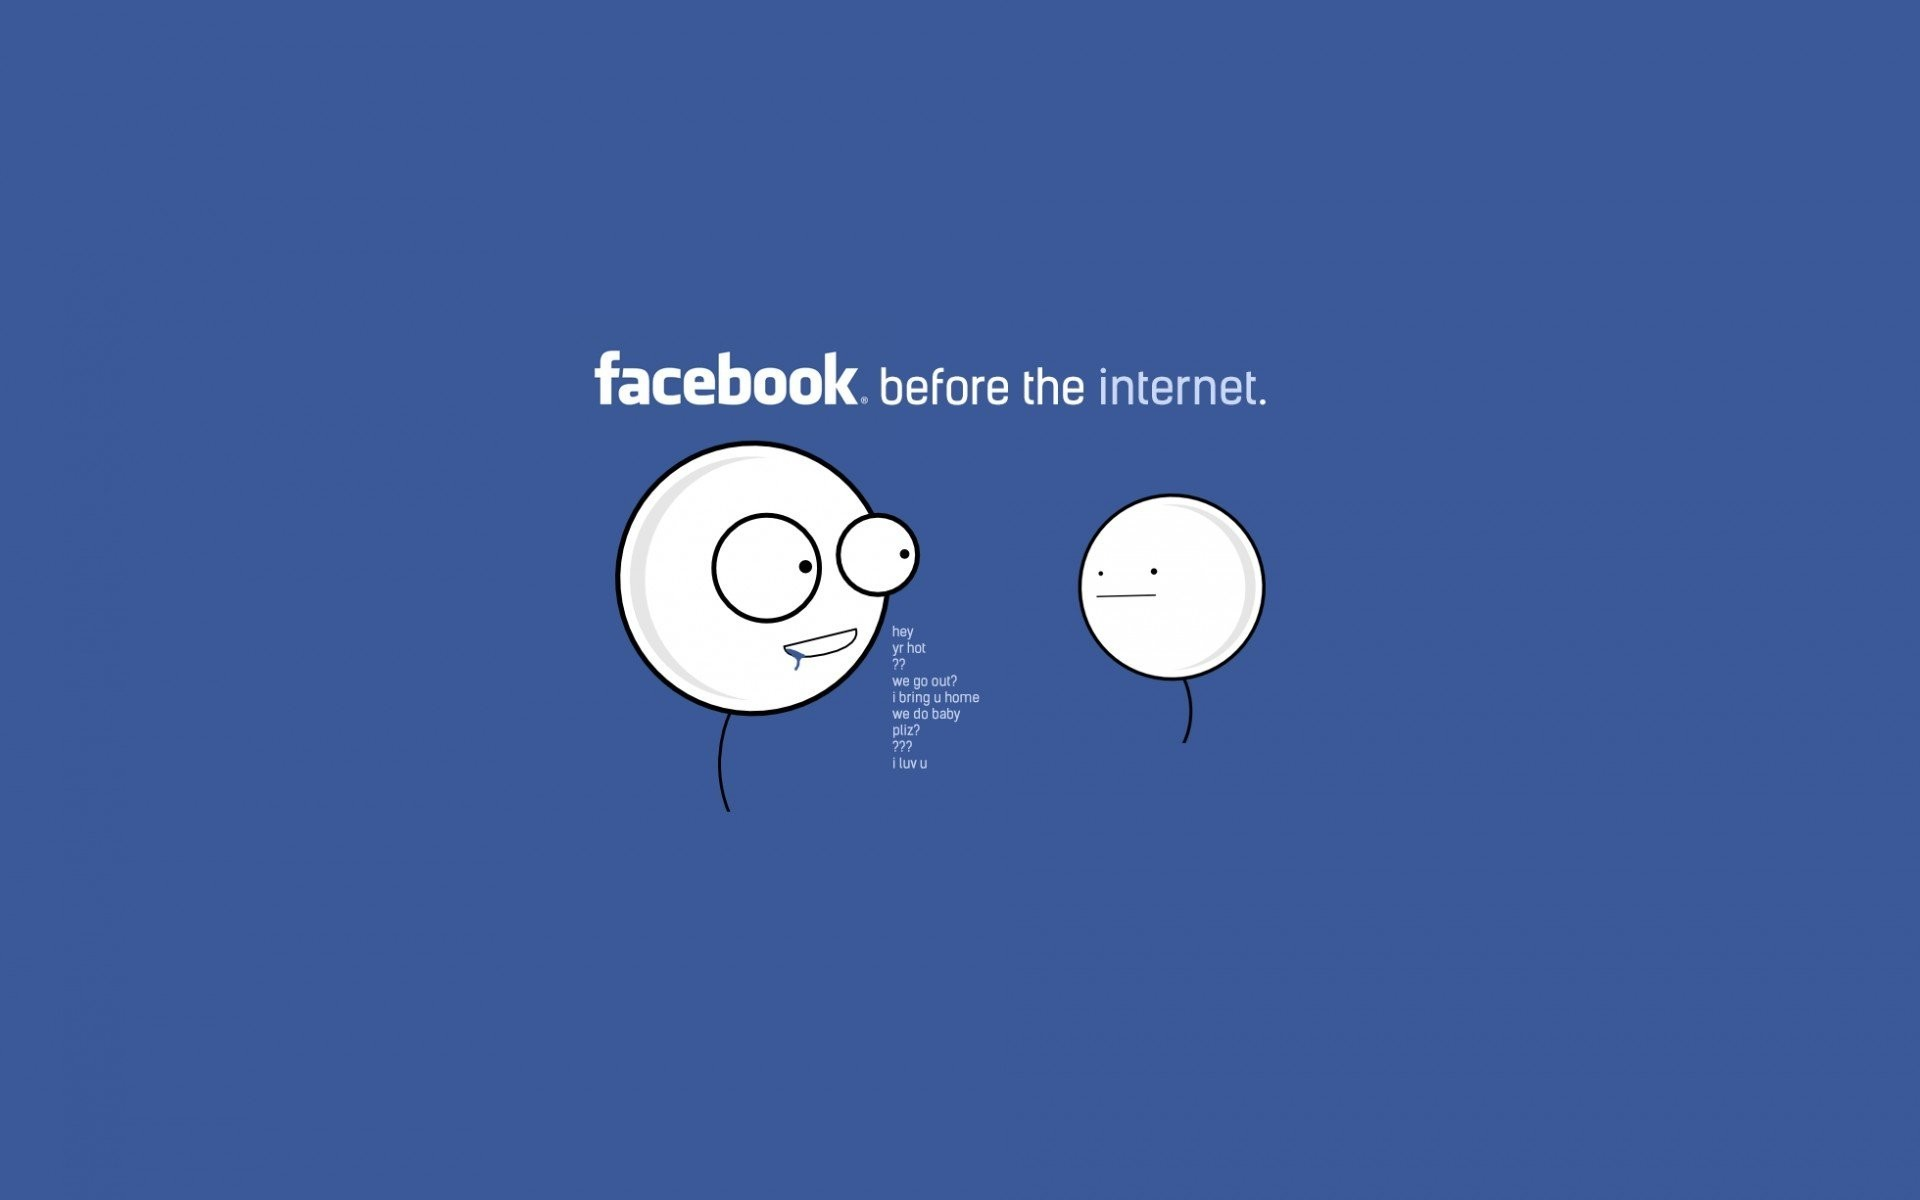 Facebook Funny Hd Wallpapers Download Free: Funny Wallpaper Quotes (66+ Images